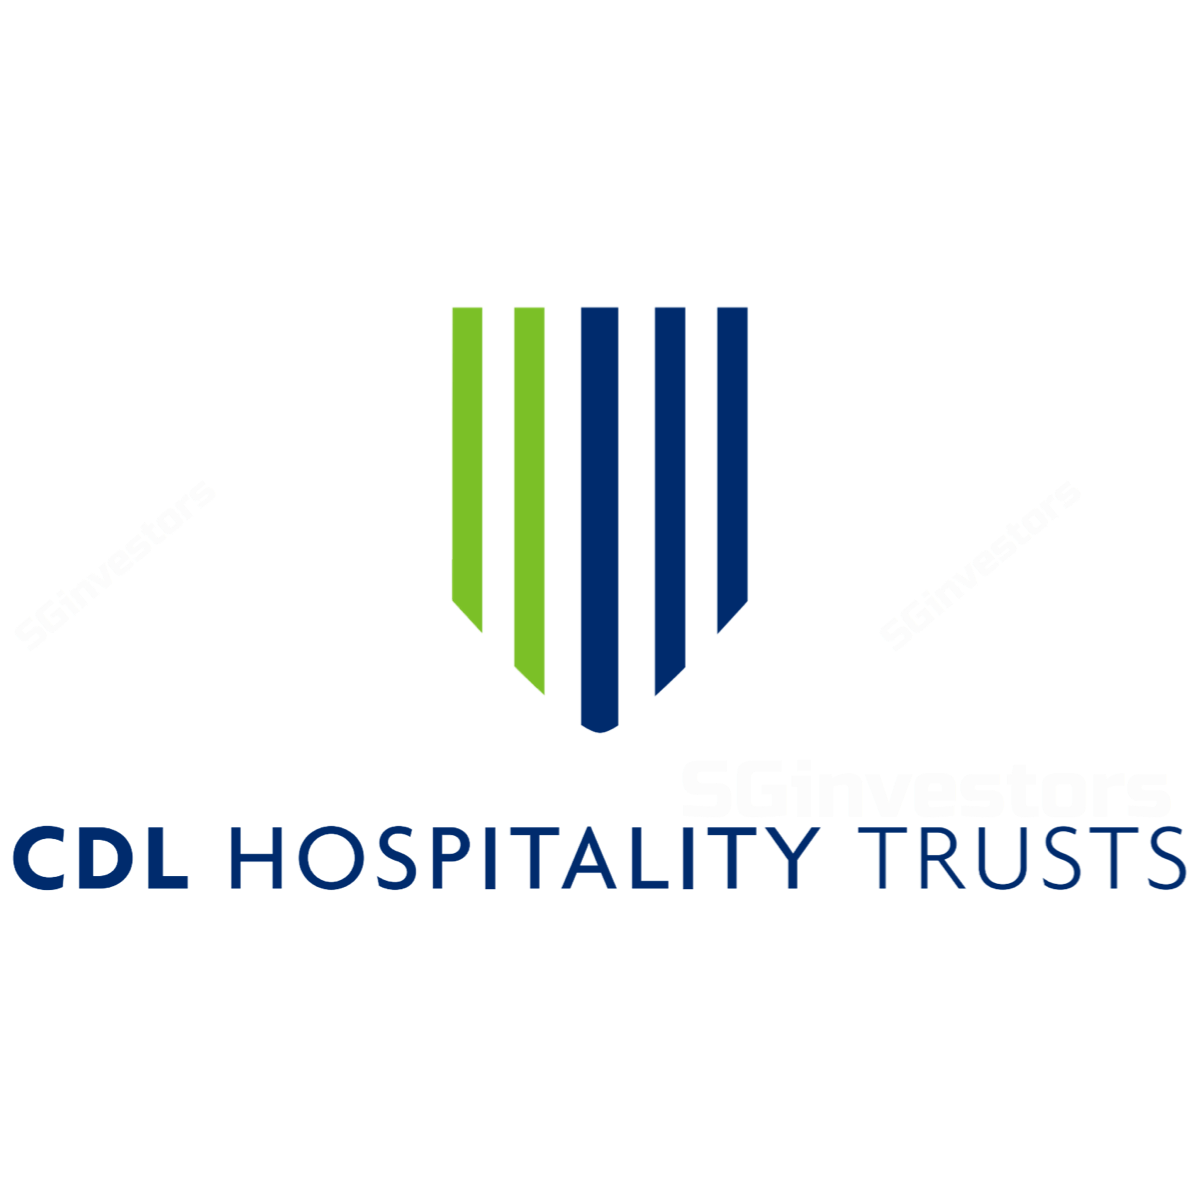 CDL Hospitality Trusts - DBS Vickers 2017-12-15: The Ace In Your Portfolio